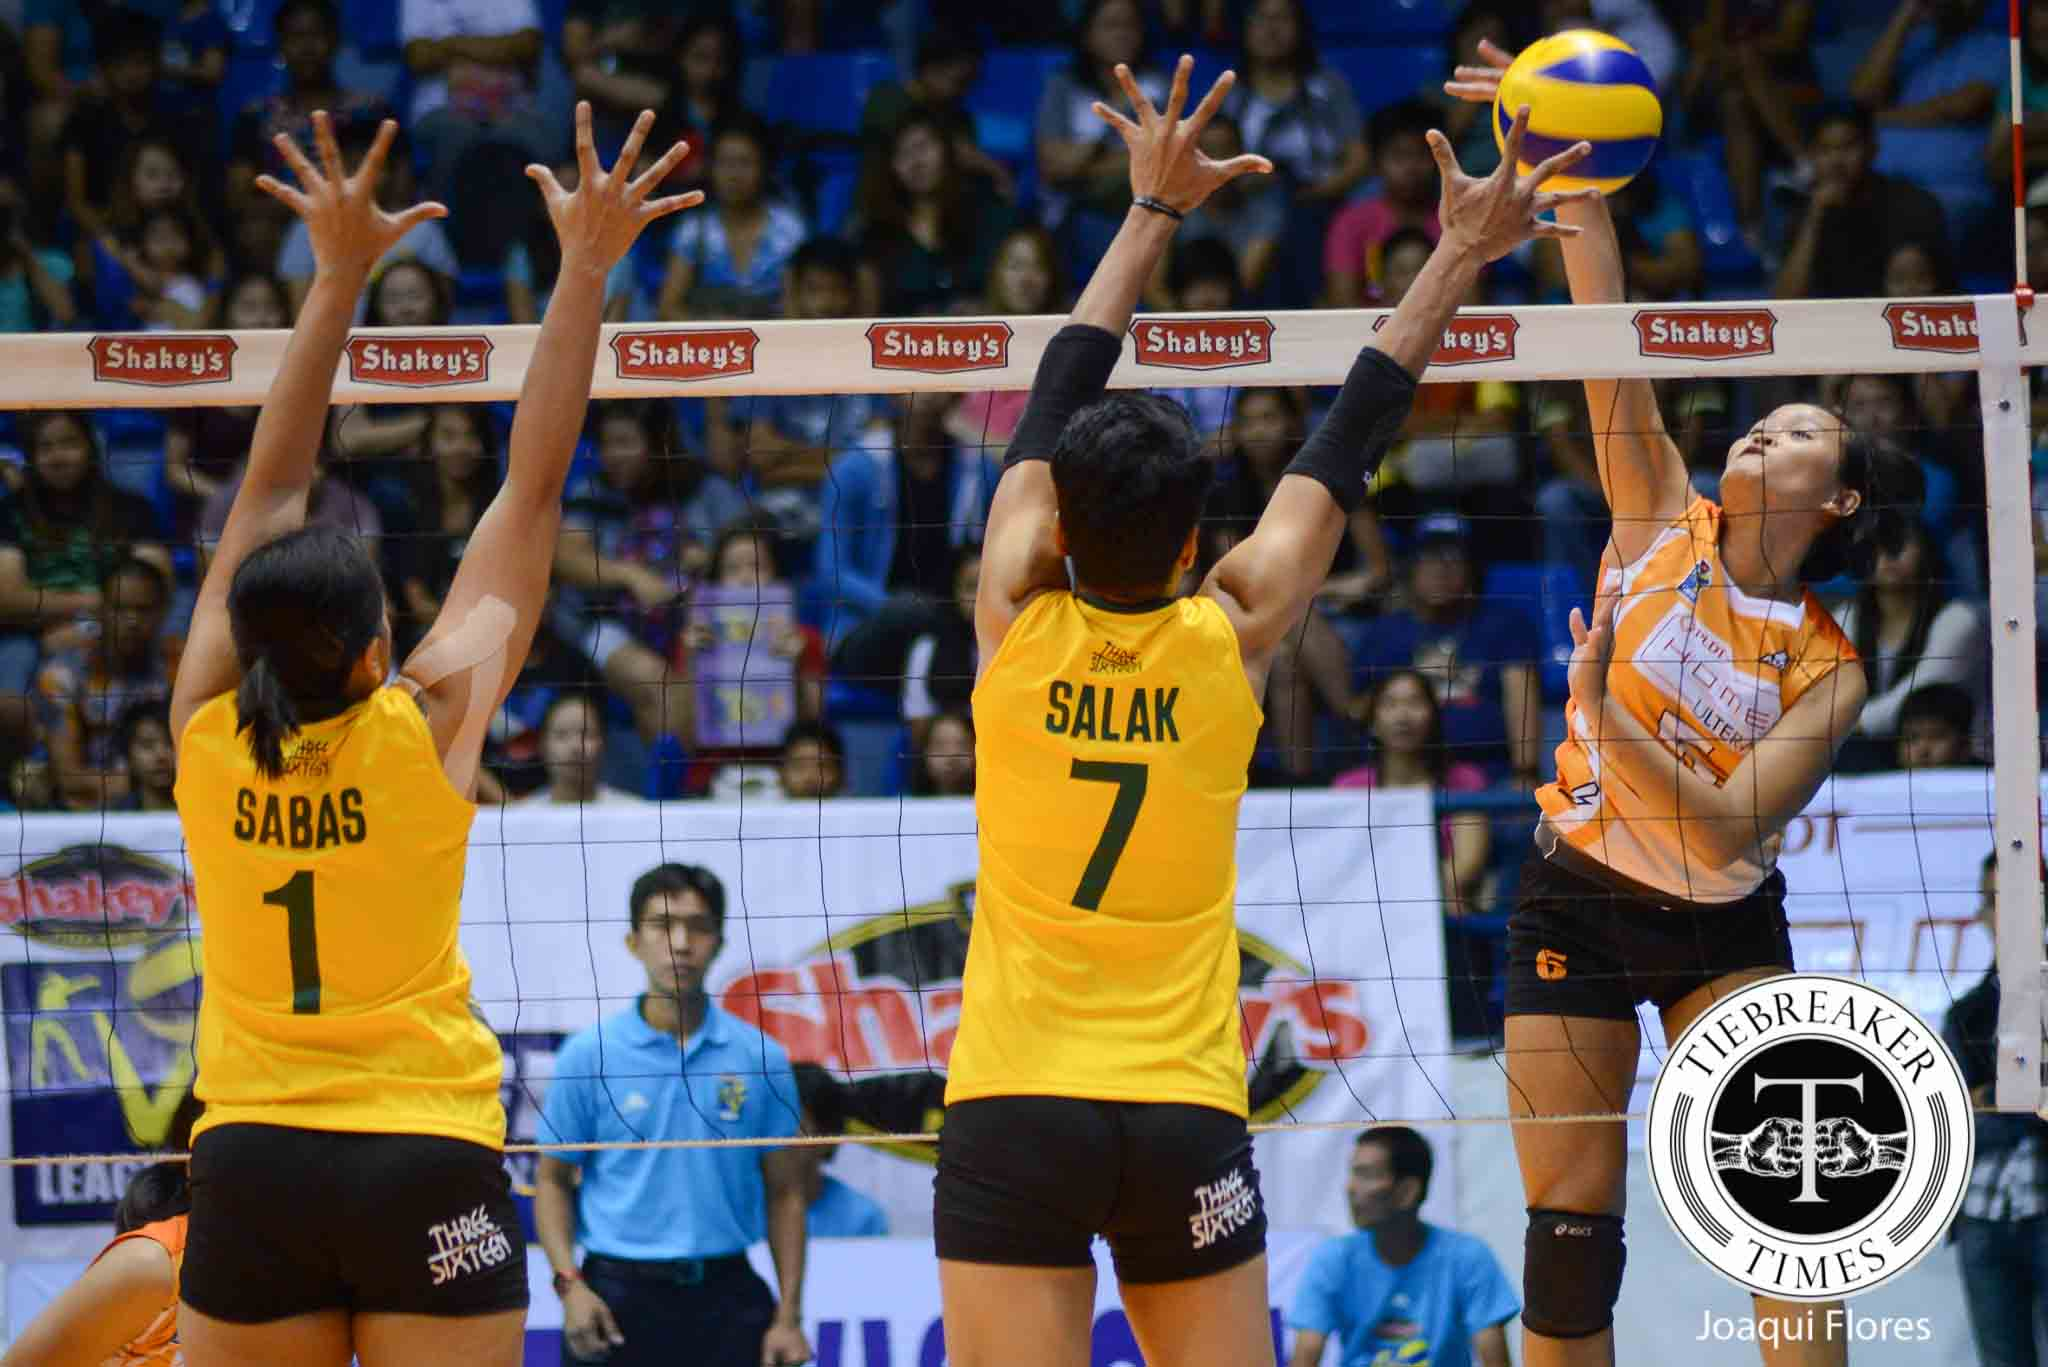 SVL-PLDTvsArmy-Soltones 'Investment' in PVL pays off for Myla Pablo, Grethcel Soltones News PVL Volleyball  - philippine sports news